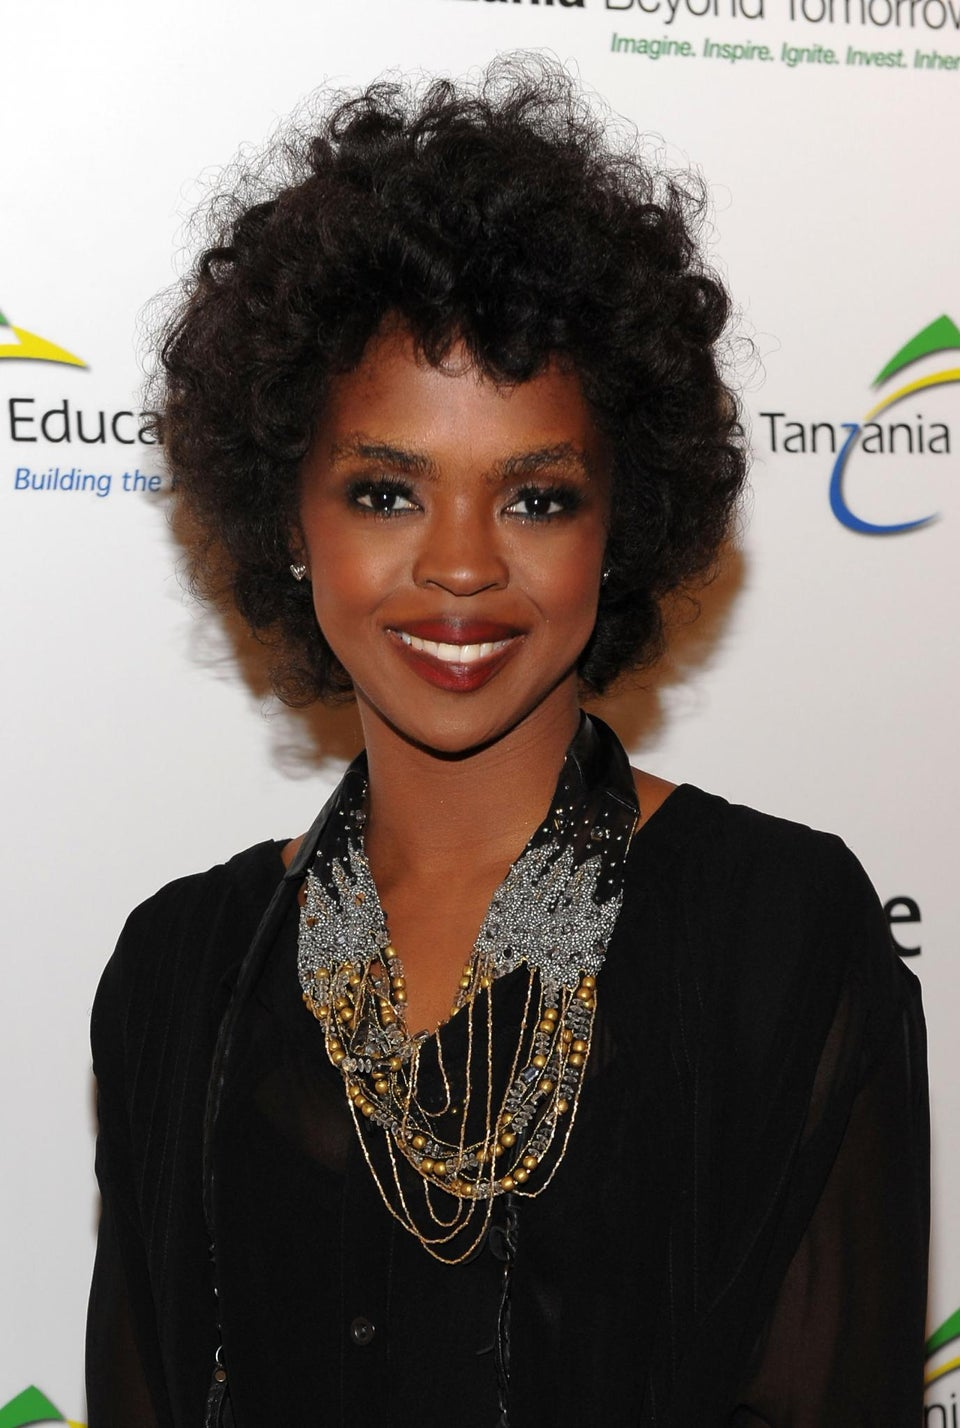 Lauryn Hill and TIDAL Announce 3-Day Music Festival Artists from the African Diaspora